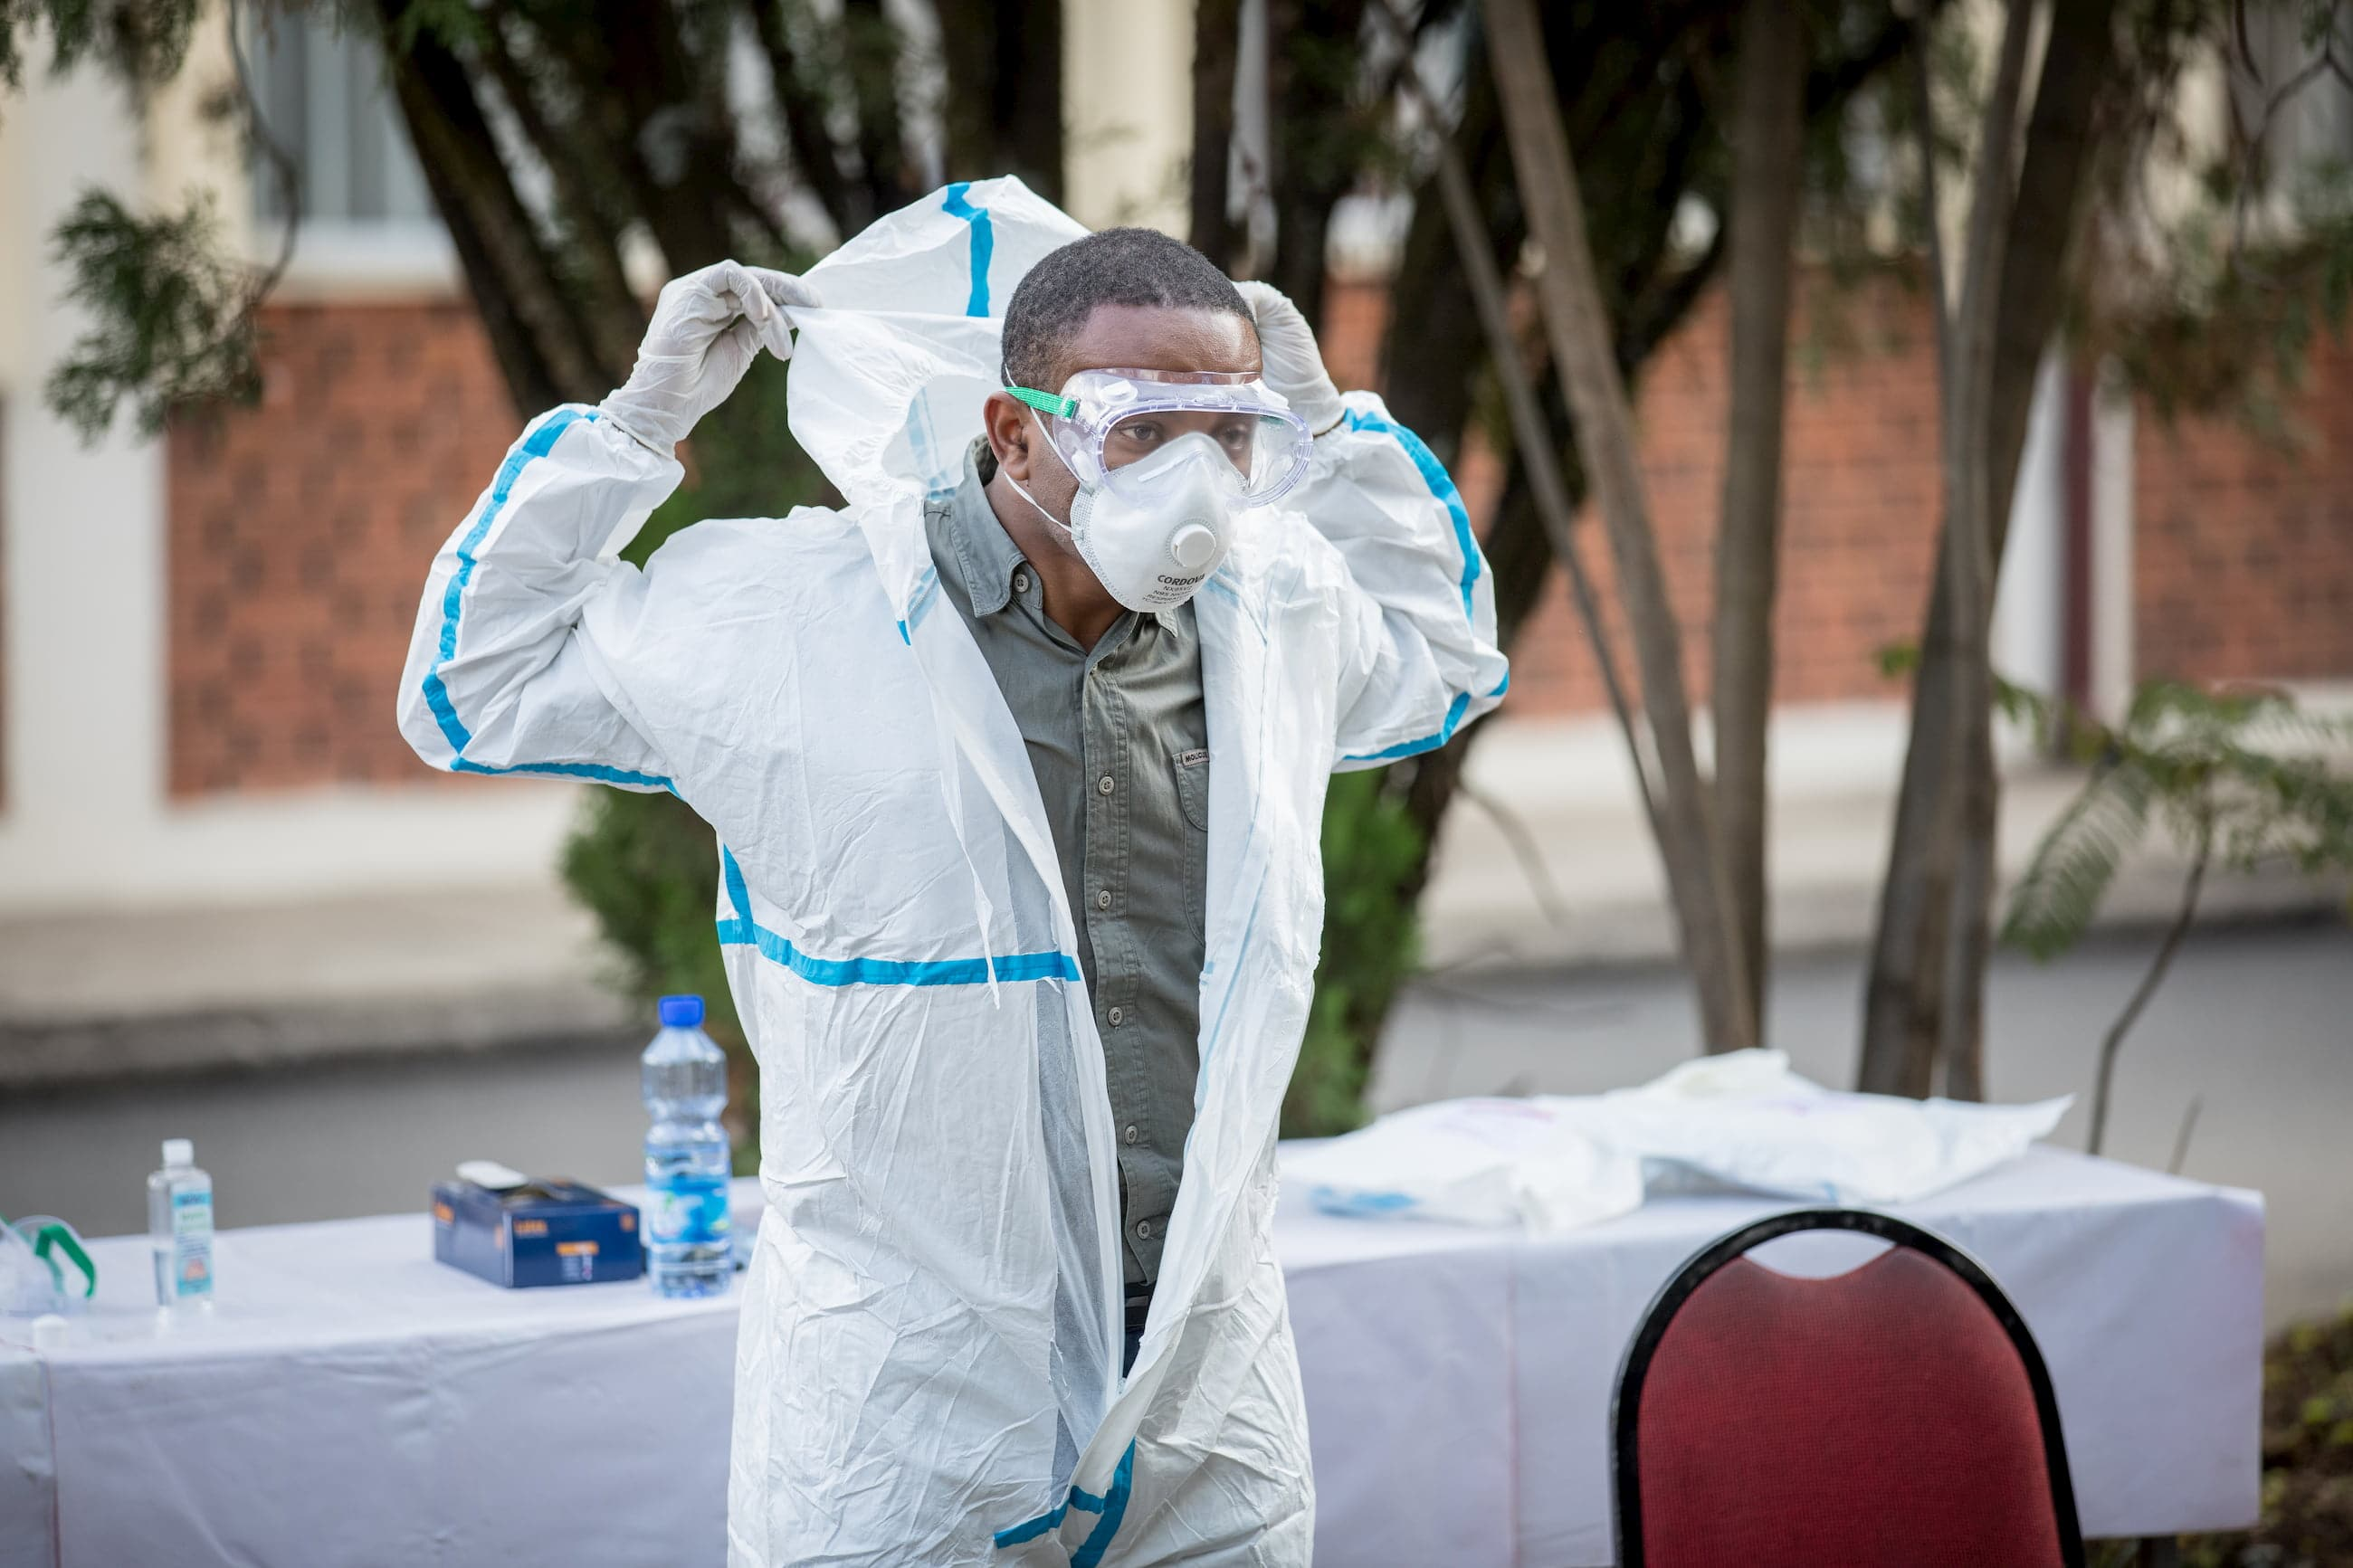 For the PPE training, trainees in Addis Ababa, Ethiopia are putting on PPE equipment.